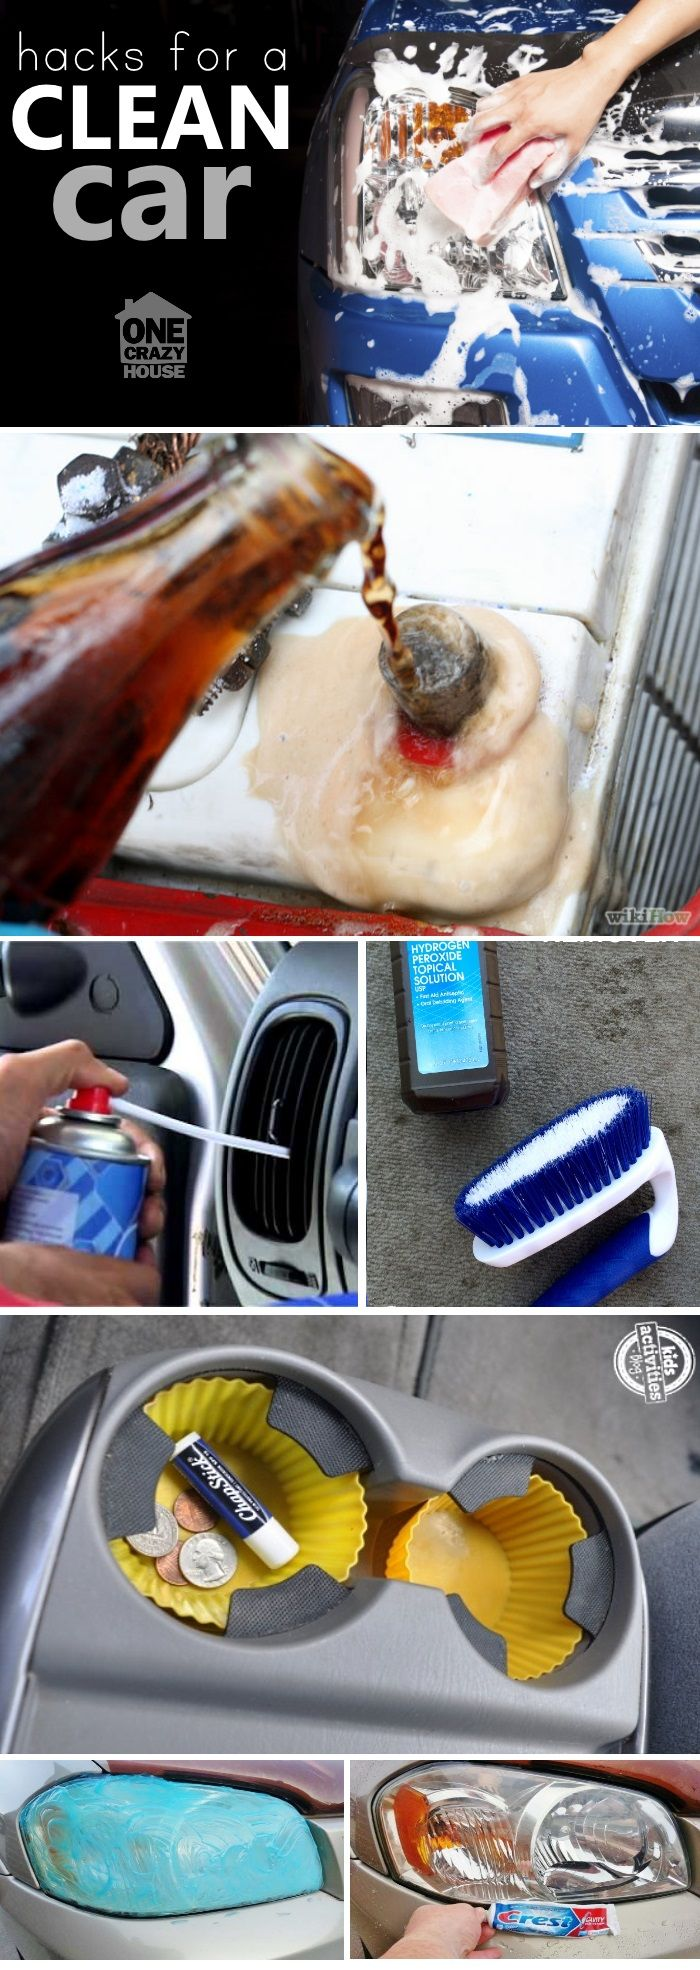 Tips for cleaning the dirt and grime from your car.